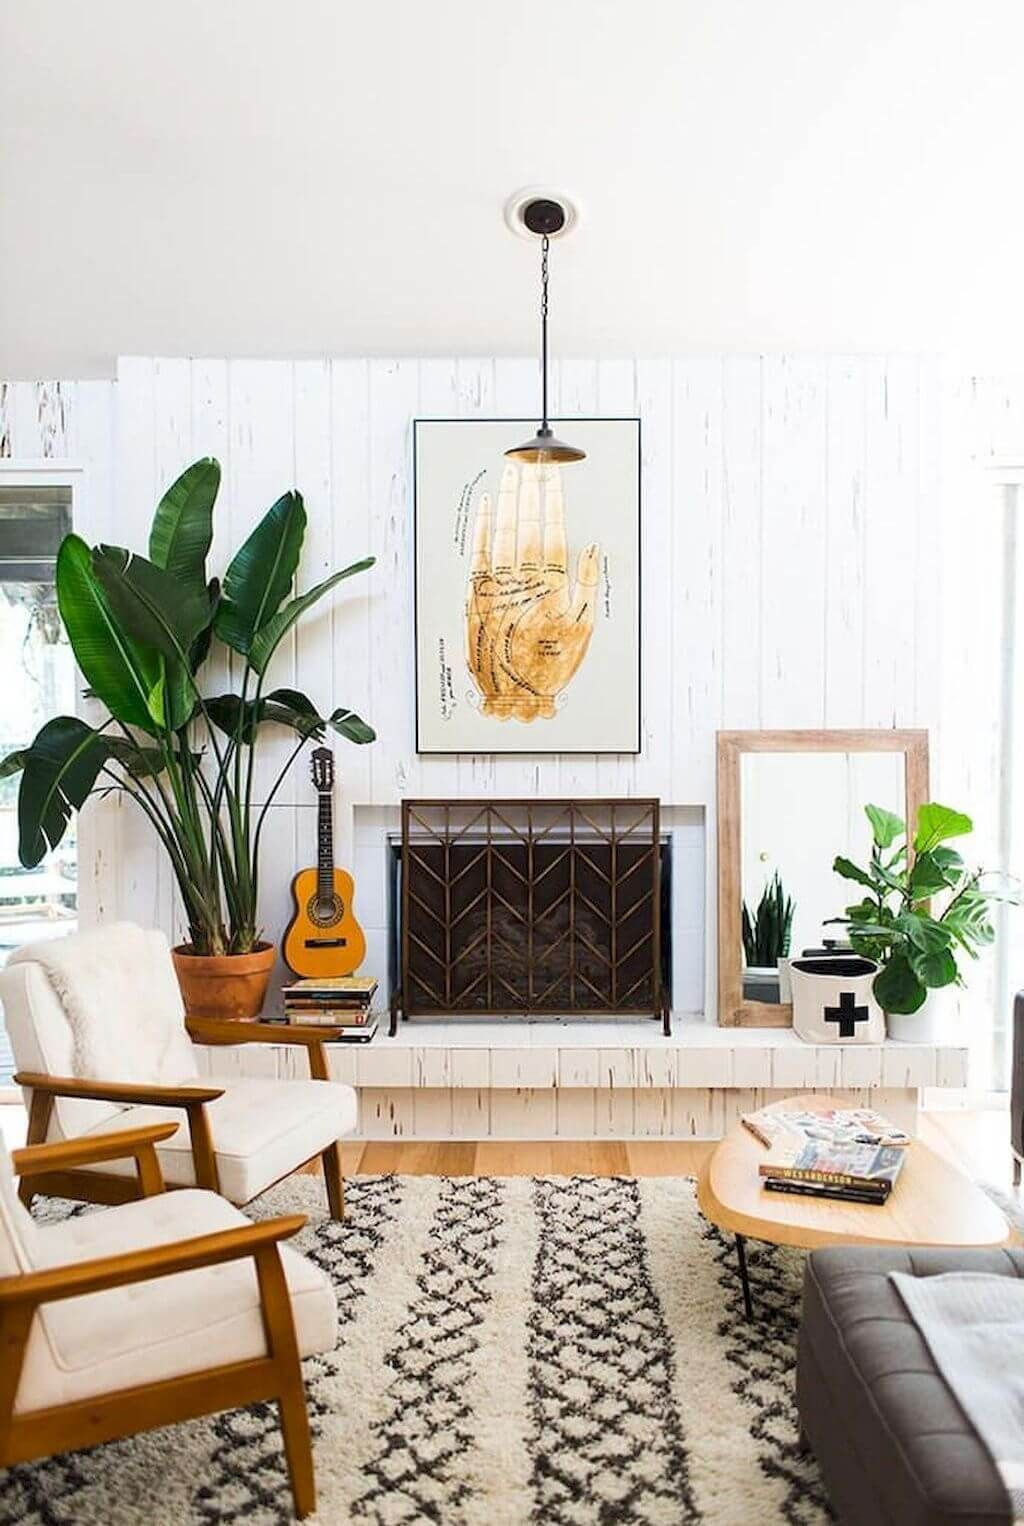 interior-design-chic-bohemian-living-room-with-contemporary-geometry-black-and-white-rug-including-cream-upholstery-wooden-armchair-plus-catchy-sleek-paneled-wall-themed-decor.jpg